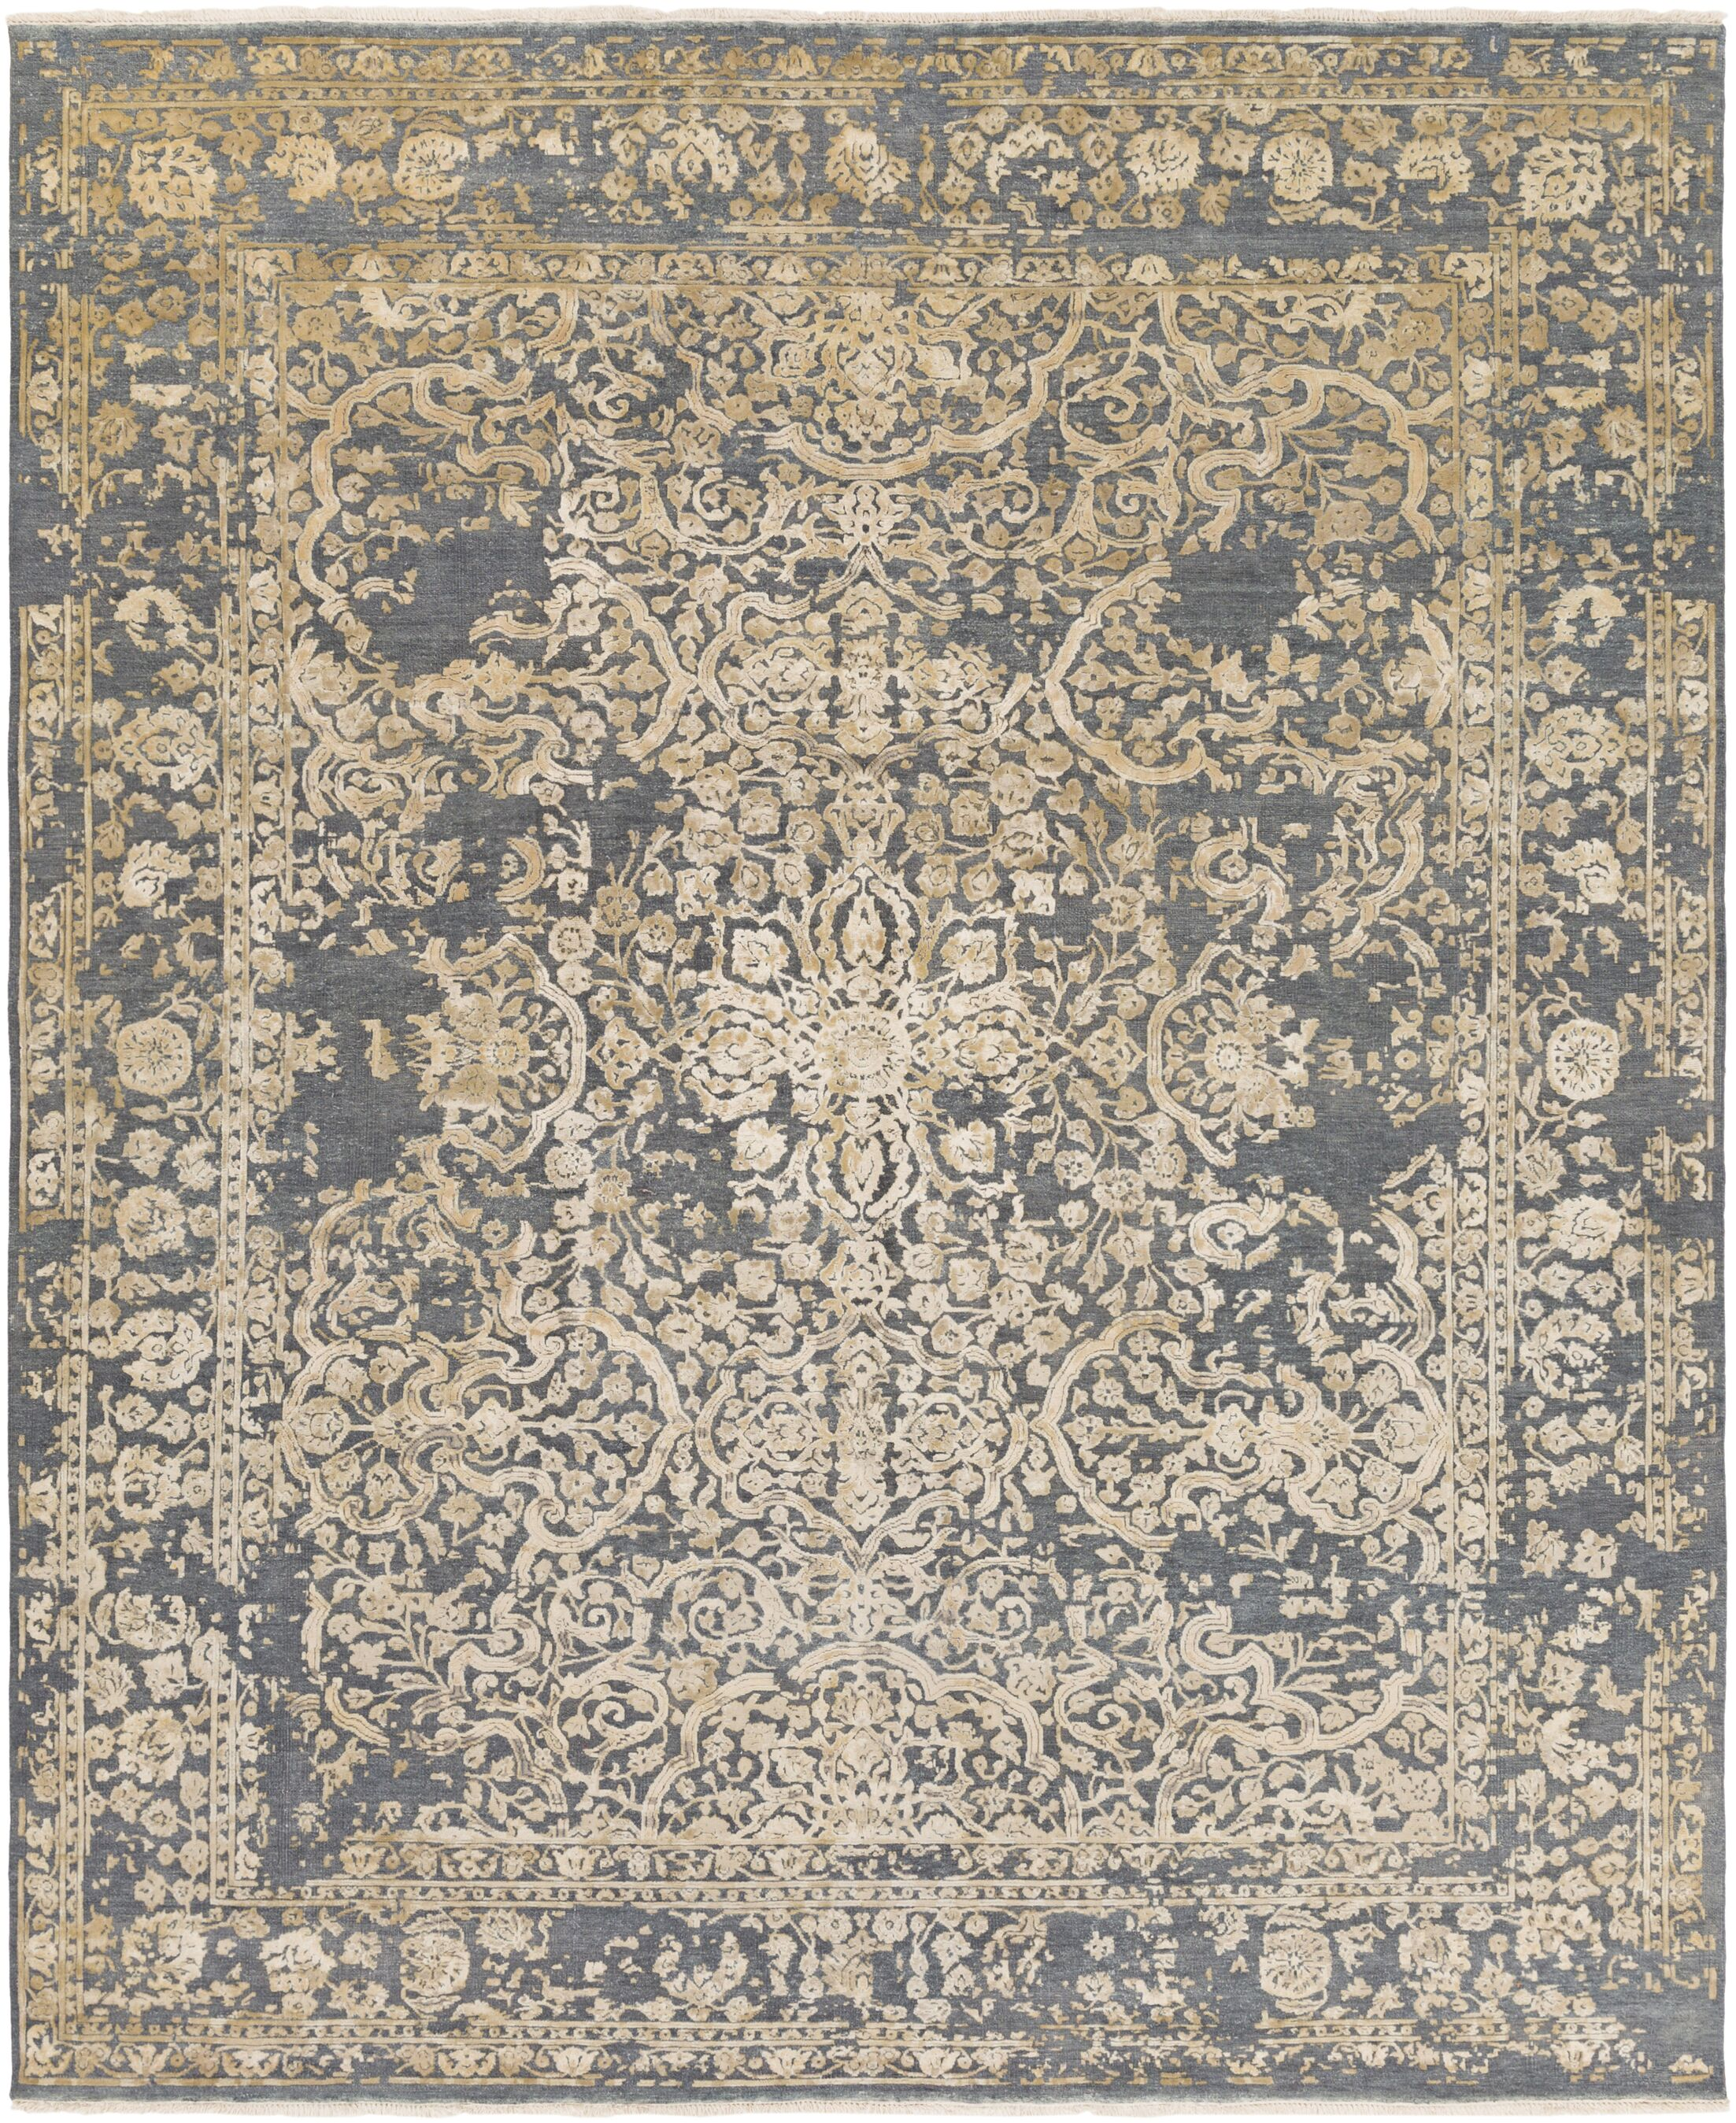 Hanrahan Hand-Knotted Gray/Beige Area Rug Rug Size: Rectangle 9' x 13'